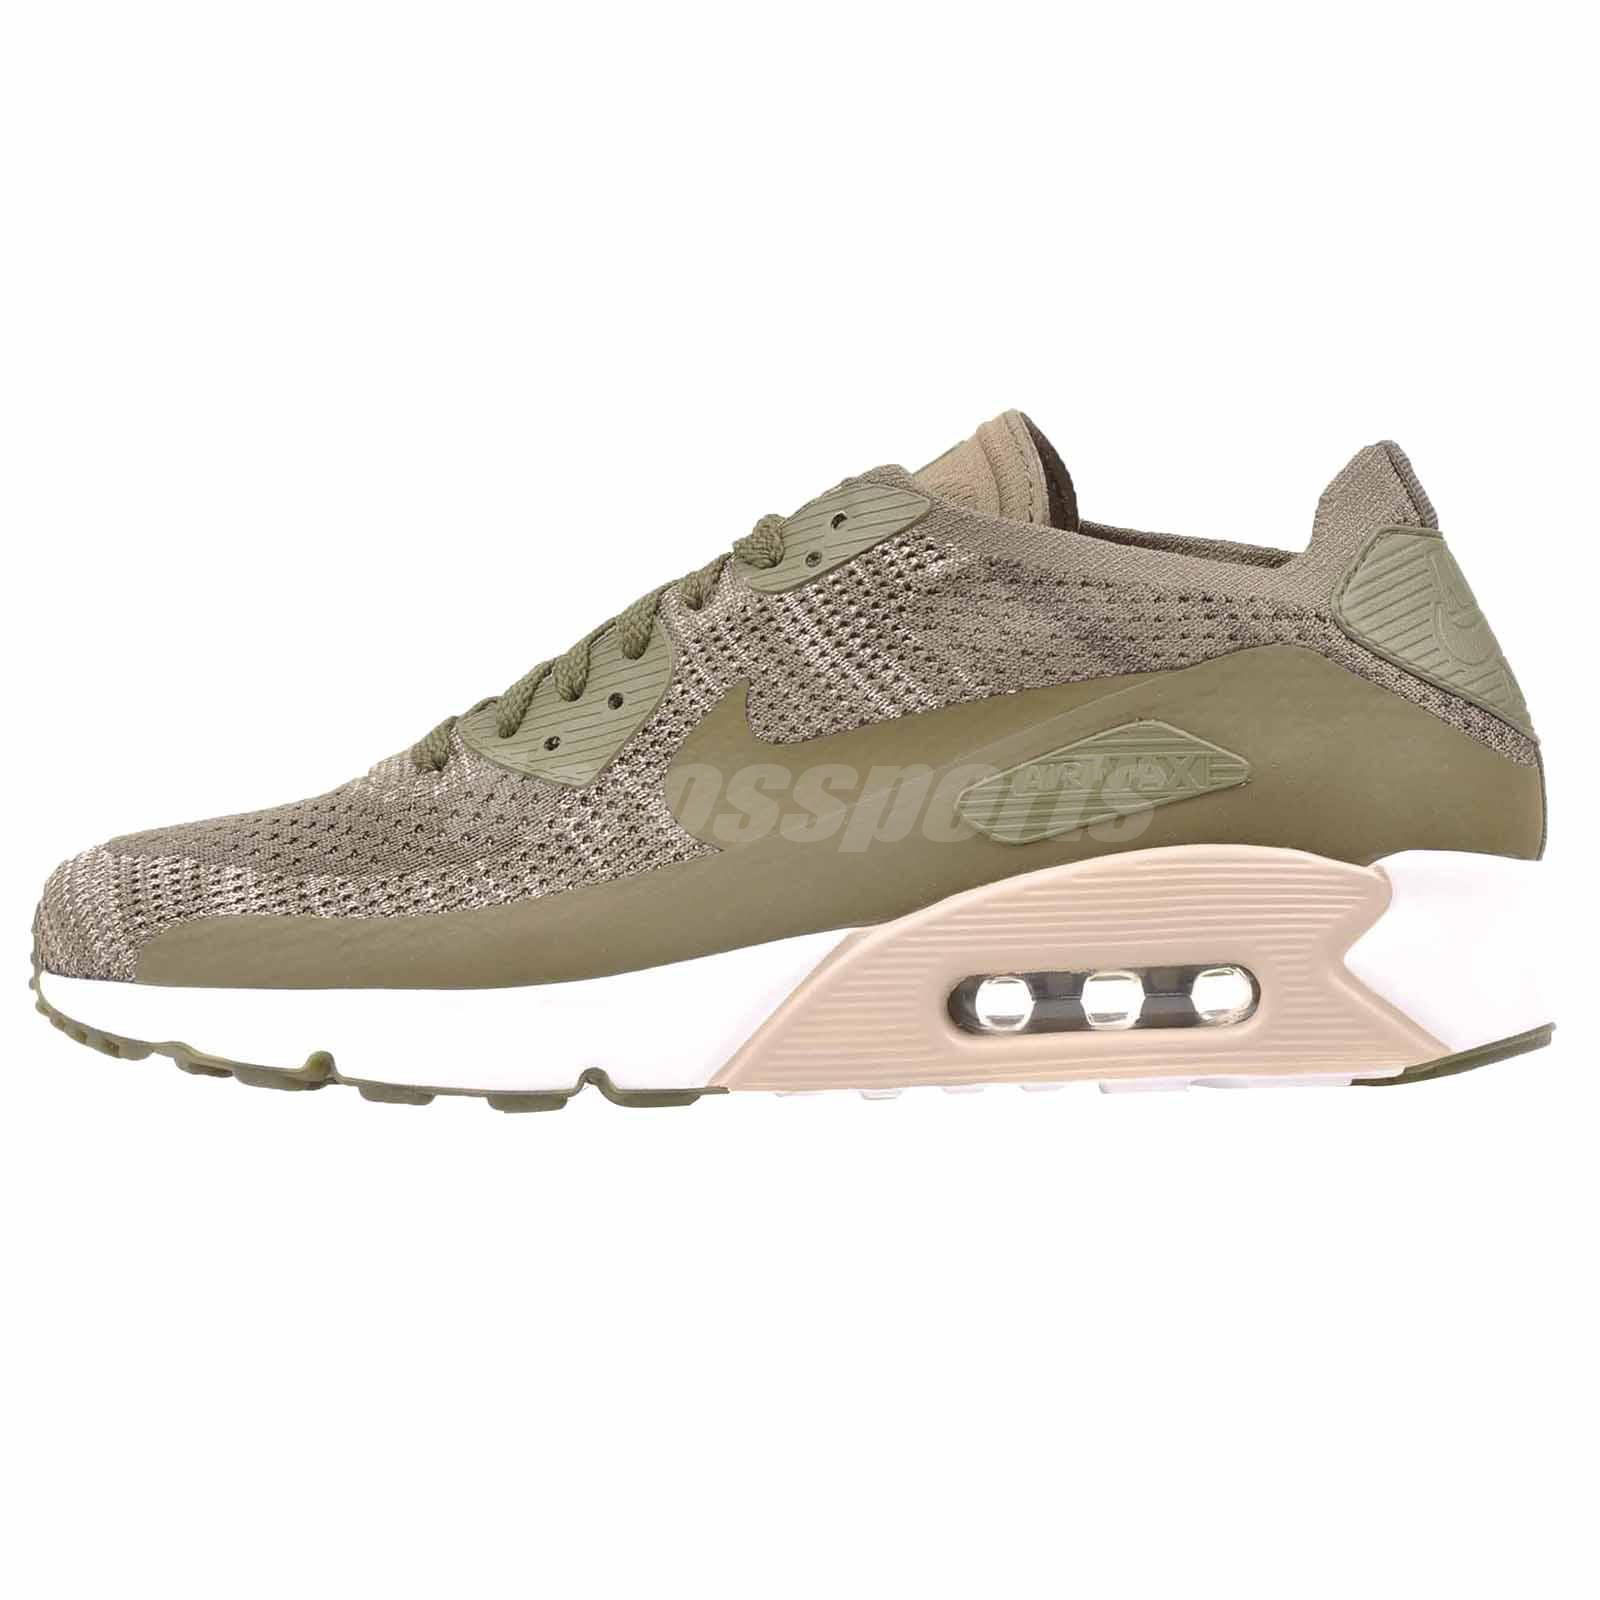 Details about Nike Air Max 90 Ultra 2.0 Flyknit Running Mens Shoes Medium Olive 875943 200